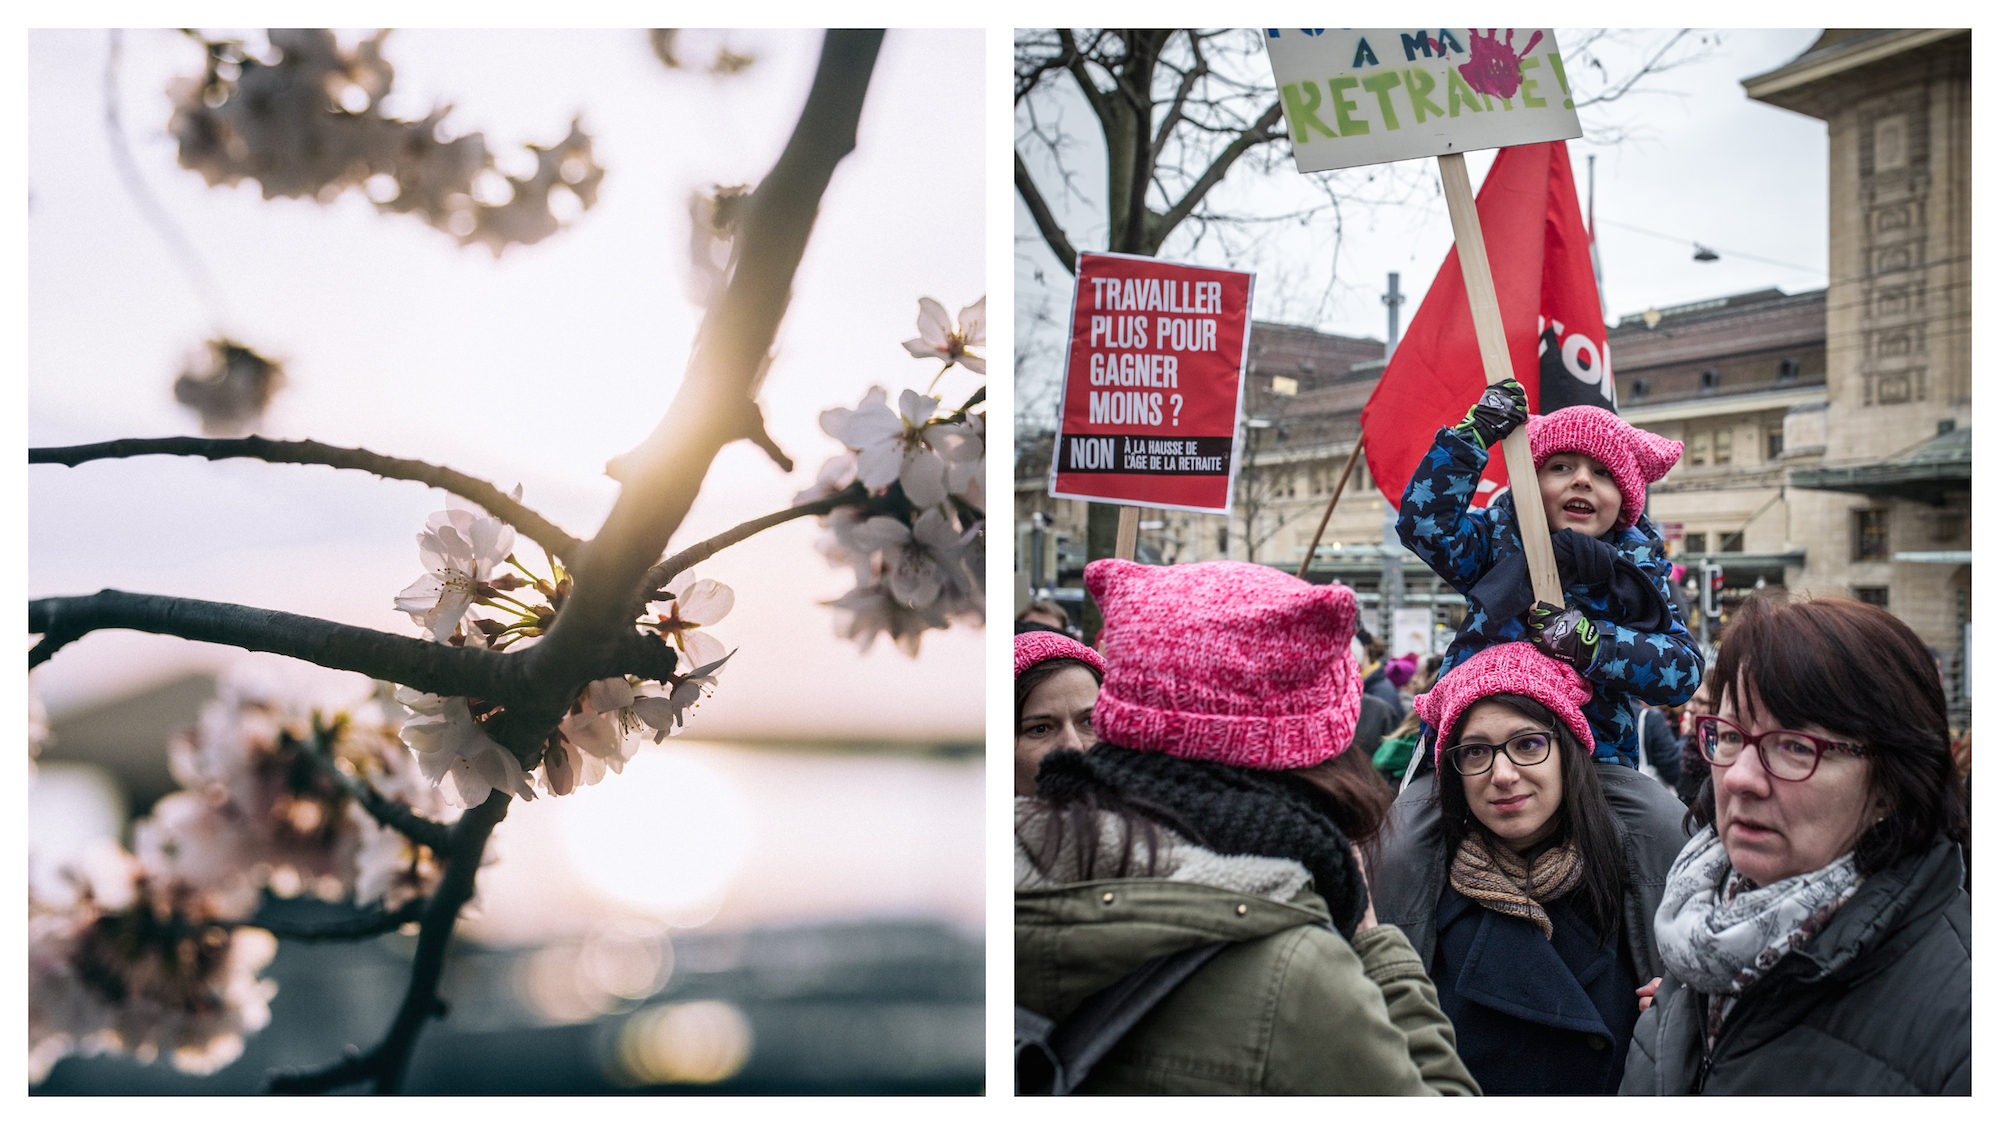 Paris trees in full bloom in March (left). Events in Paris in March, like protests (right).